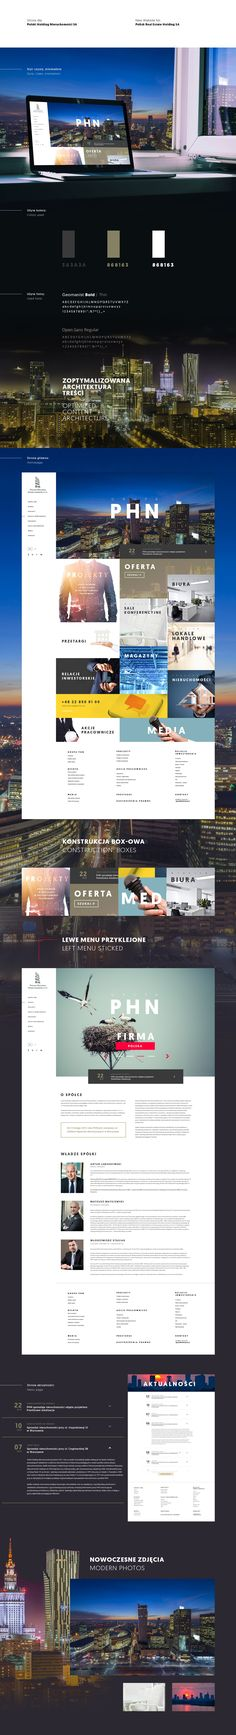 Polish Real Estate Holding website / PHN SA on Behance